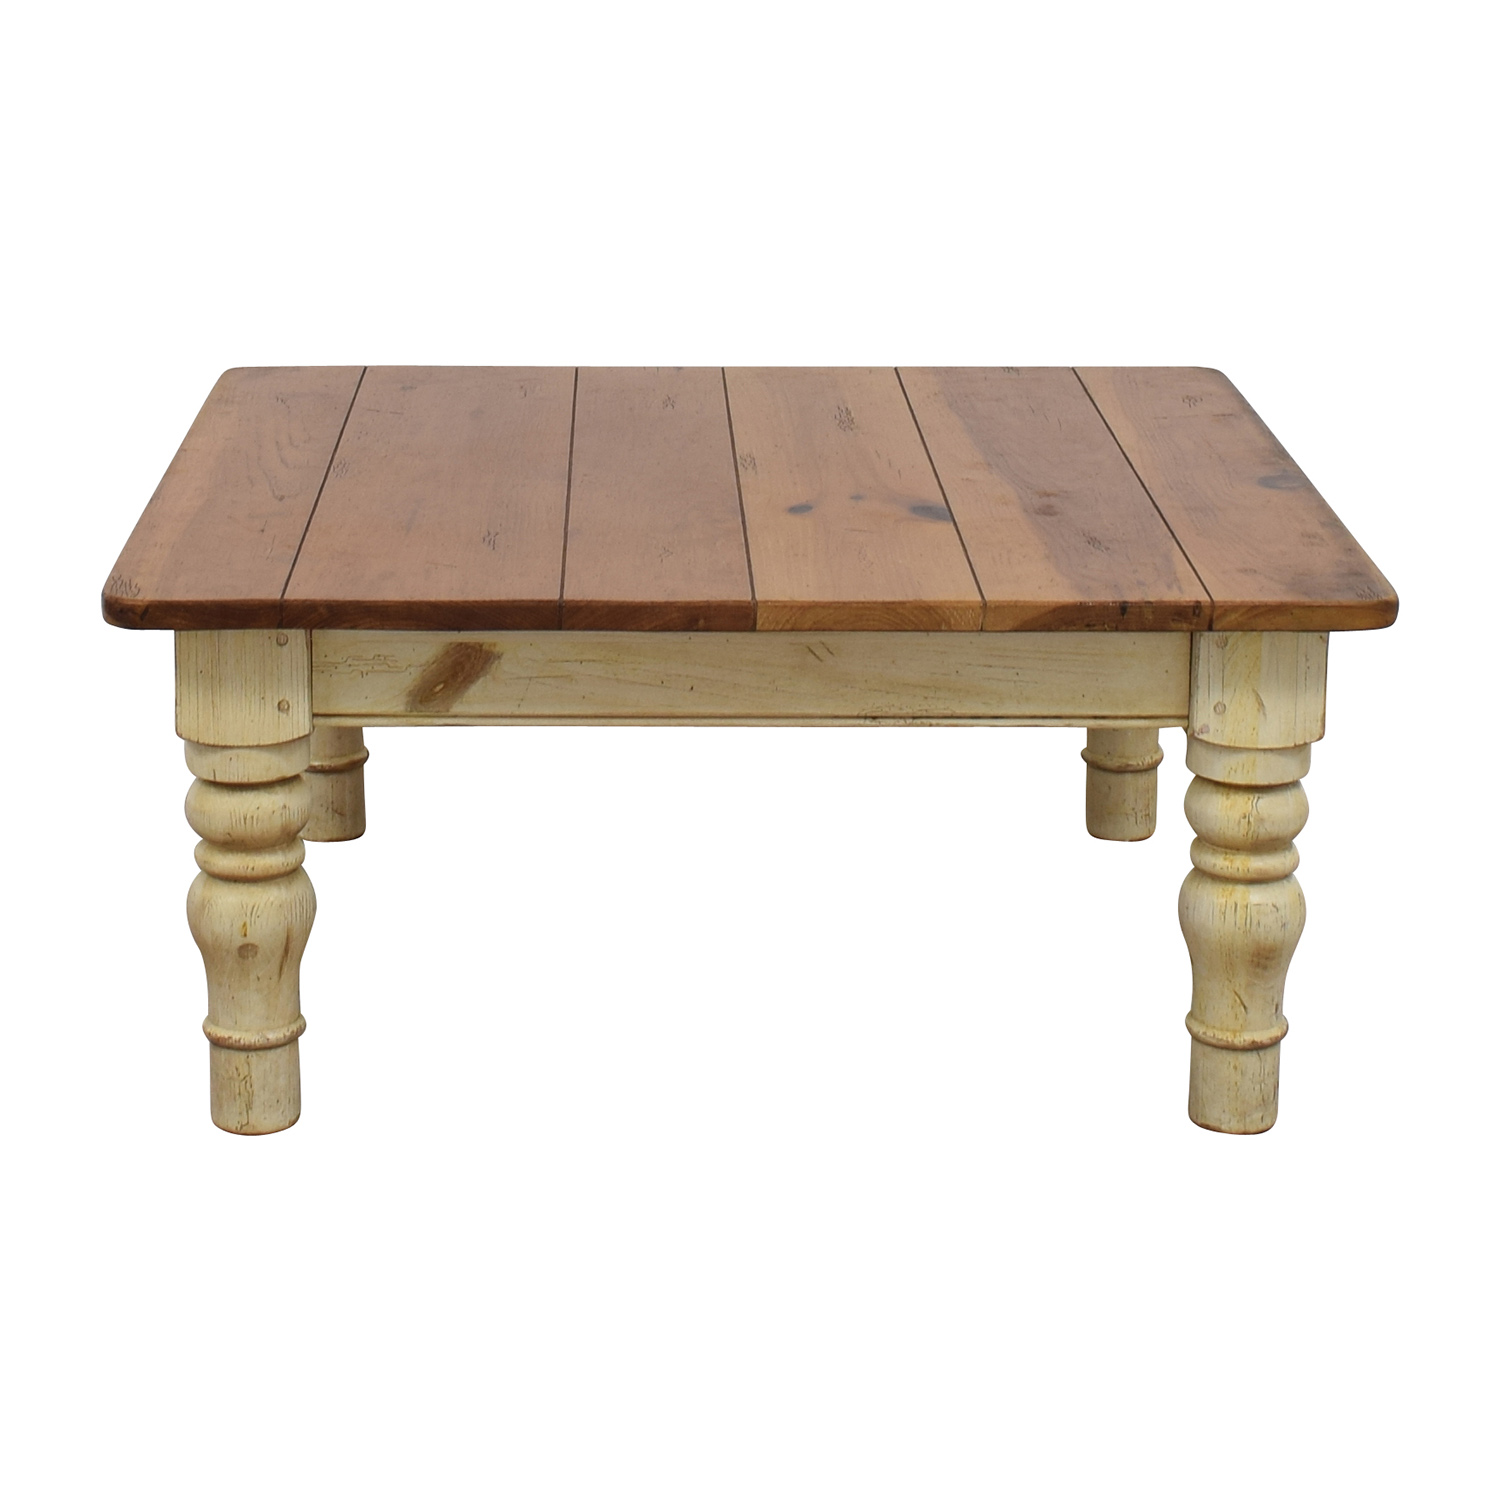 buy Ethan Allen Ethan Allen Farmhouse Cherry Wood Coffee Table online